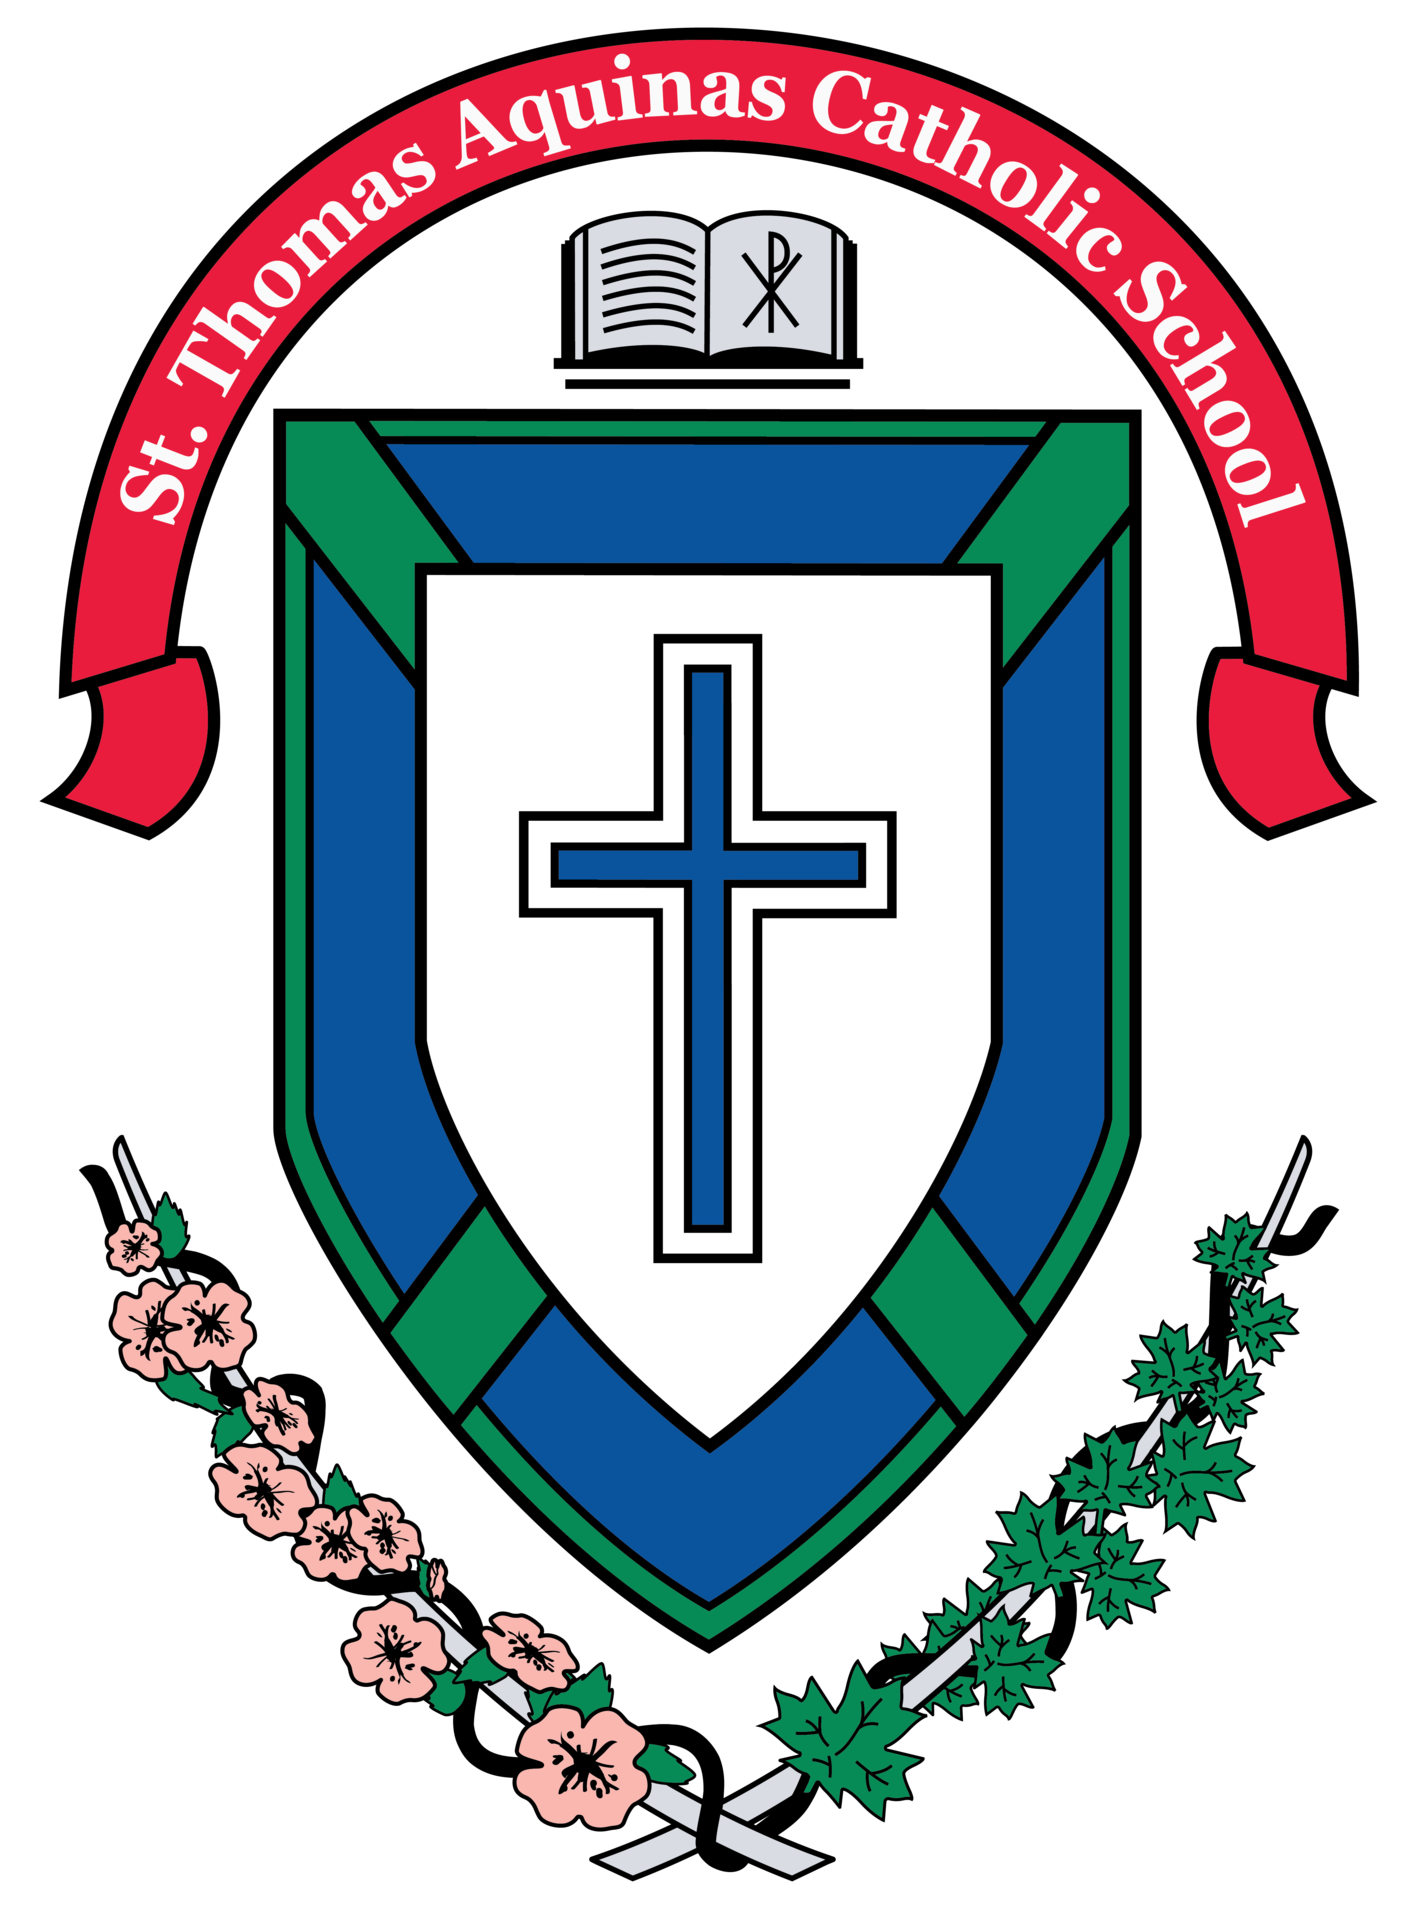 St. Thomas Aquinas Catholic School (Gr.5 - Gr.8) logo